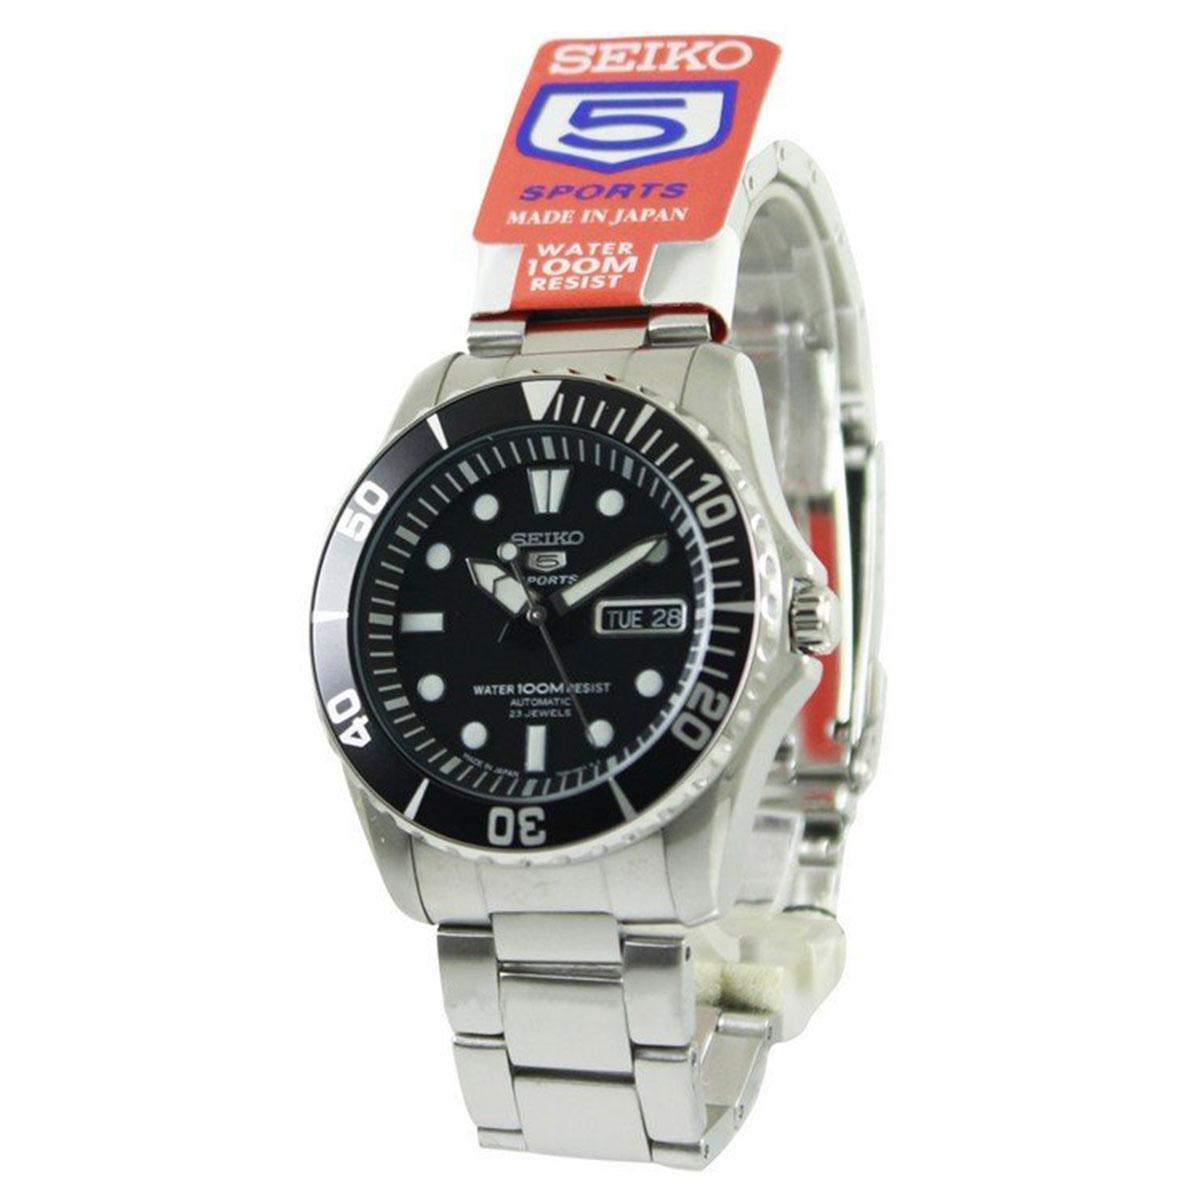 Buy Seiko Watches Online Automatic Lazada Chronograph Jam Tangan Strap Stainless Steel Silver Sks521p1 5 Sports Case Bracelet Mens Japan Snzf17j1